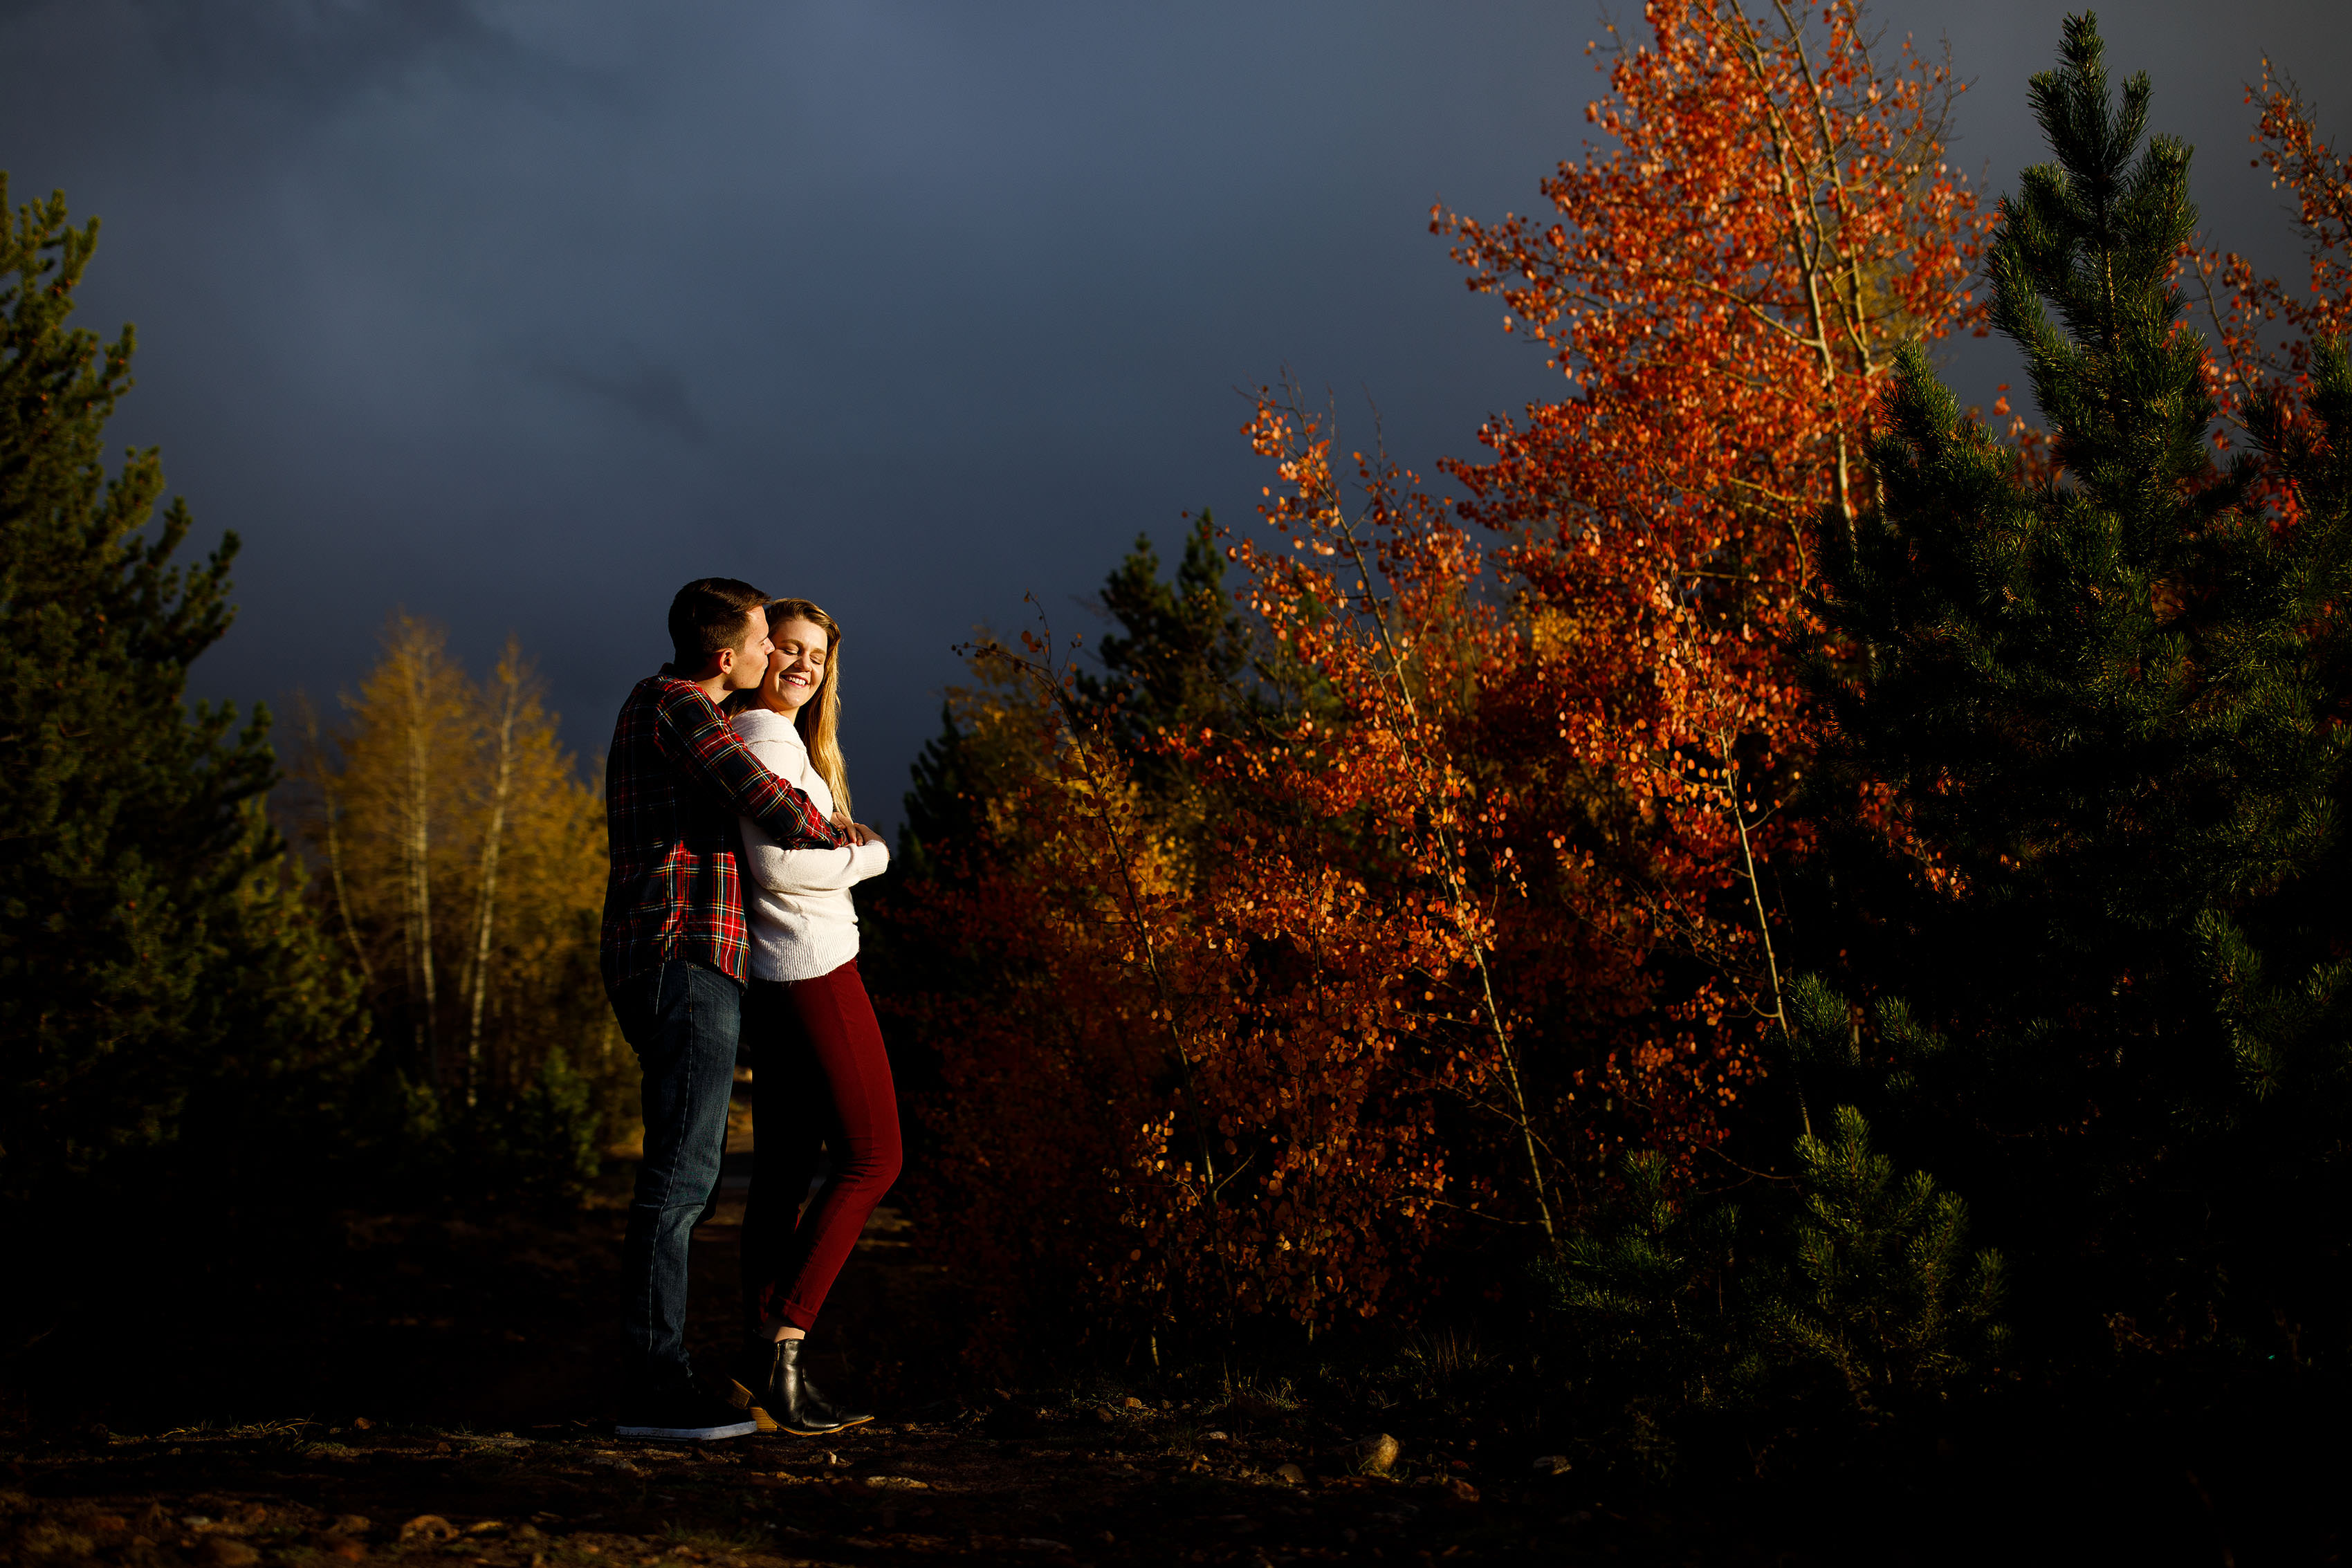 The couple share a moment during their fall mountain engagmenet near a grove of colorful aspen trees in Frisco Colorado